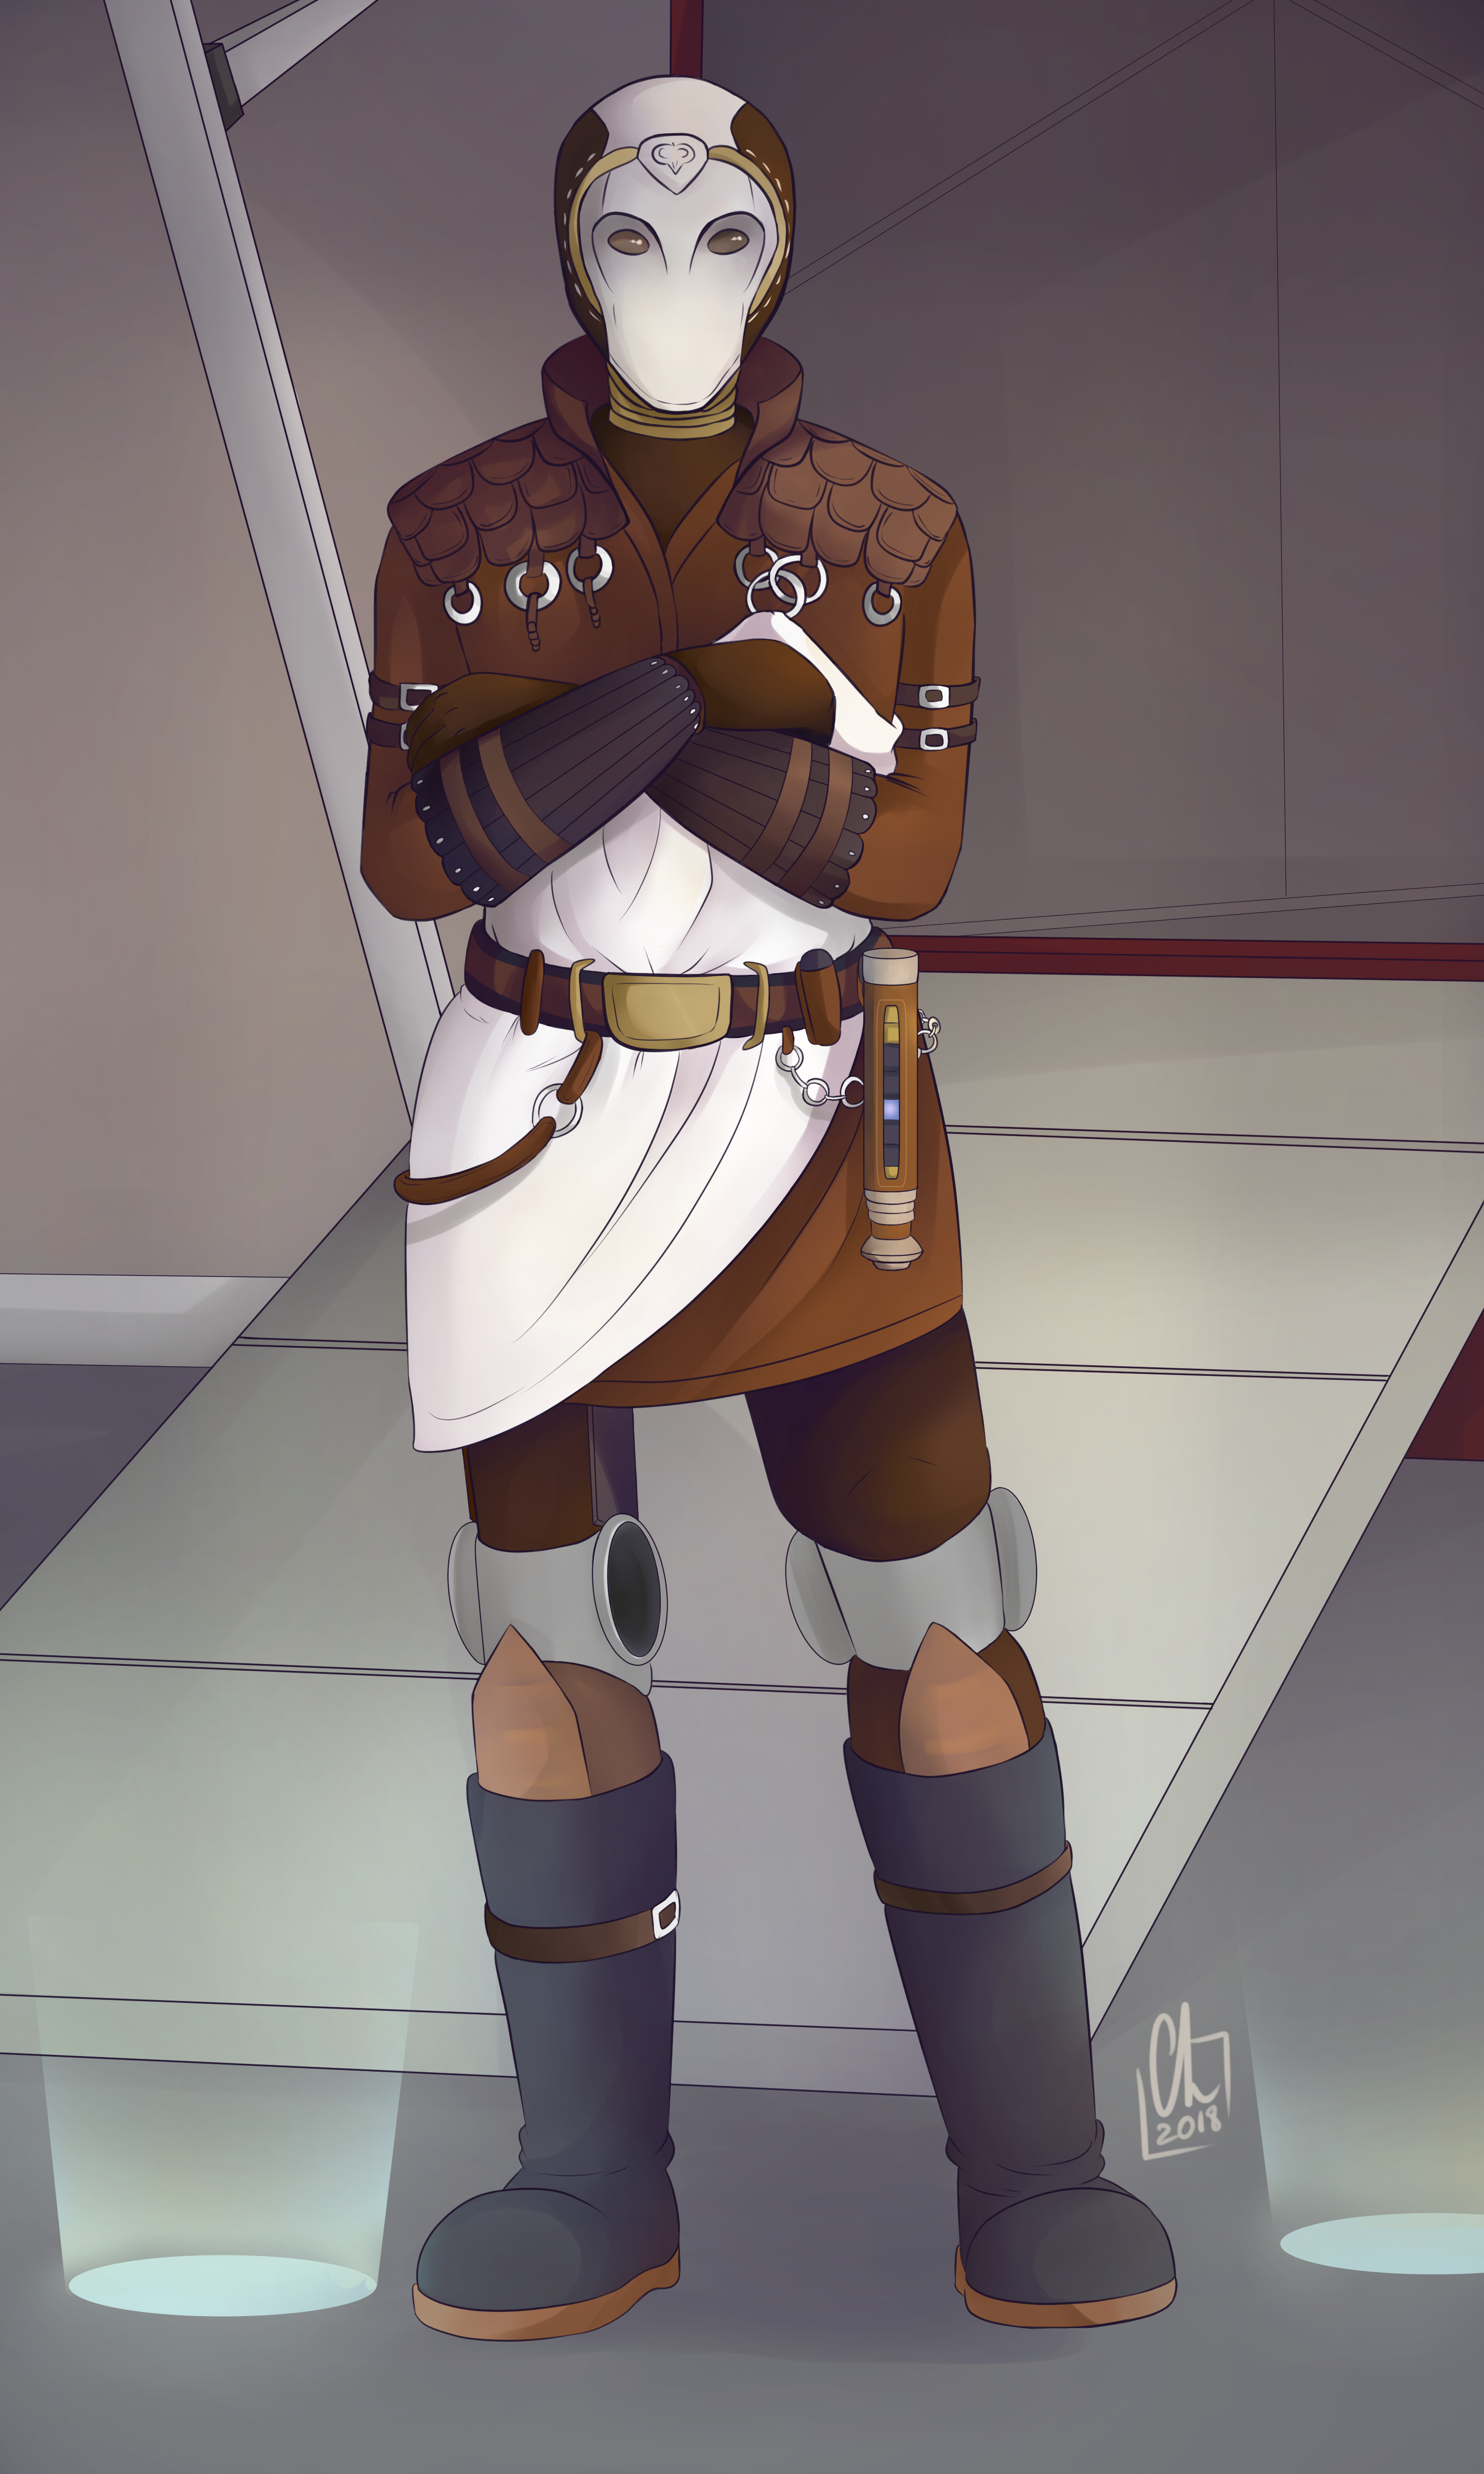 [Commission] - Jedi from SWTOR by Chyche